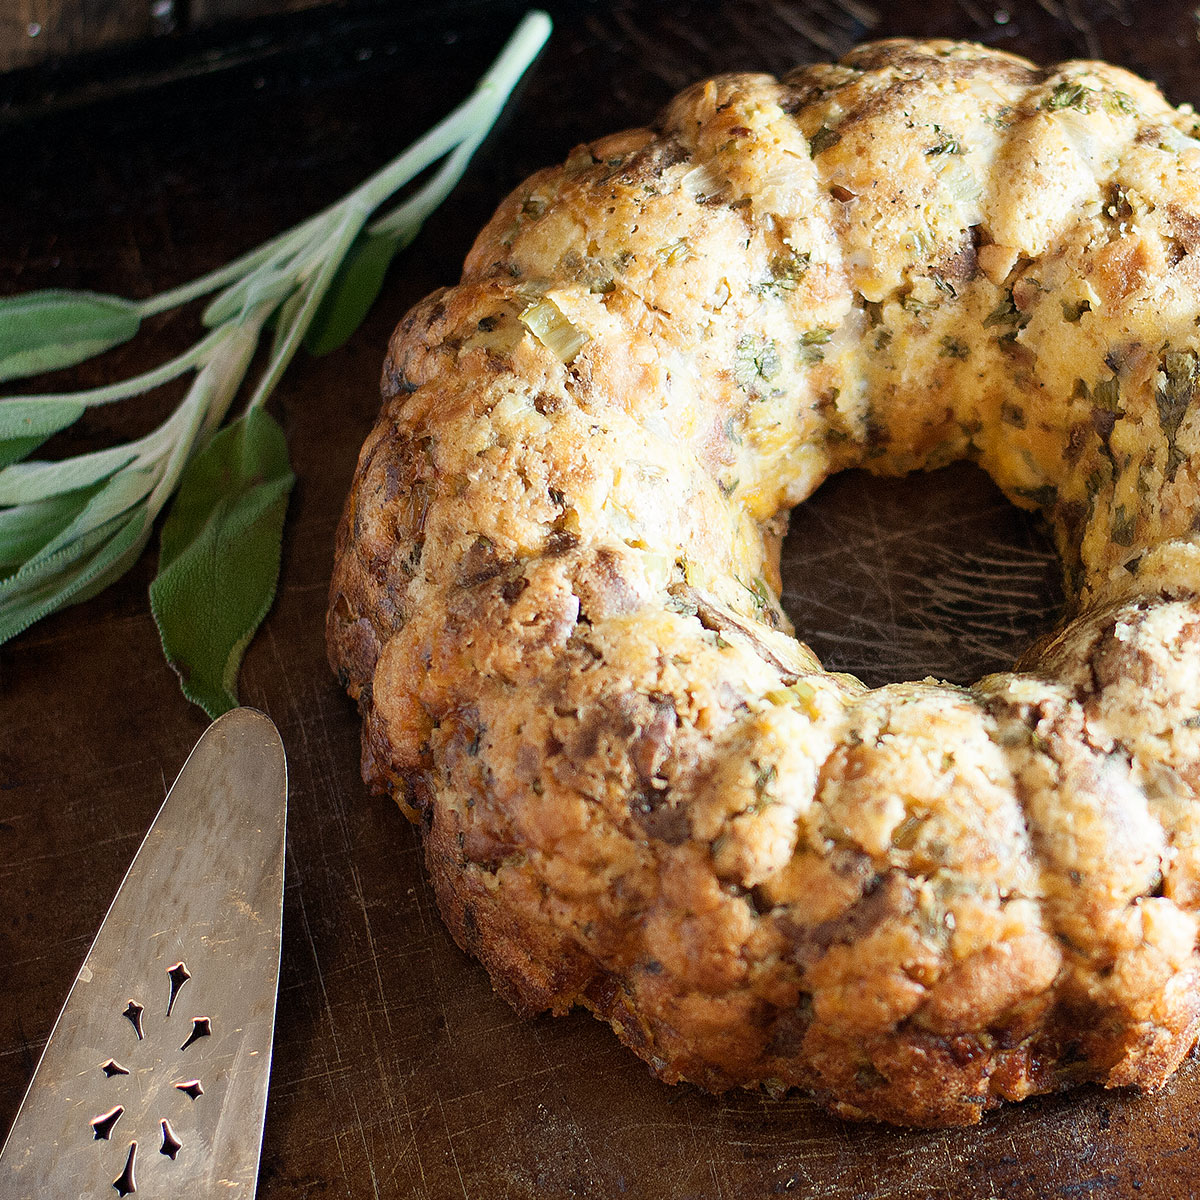 15 spectacular side dishes and desserts for Thanksgiving